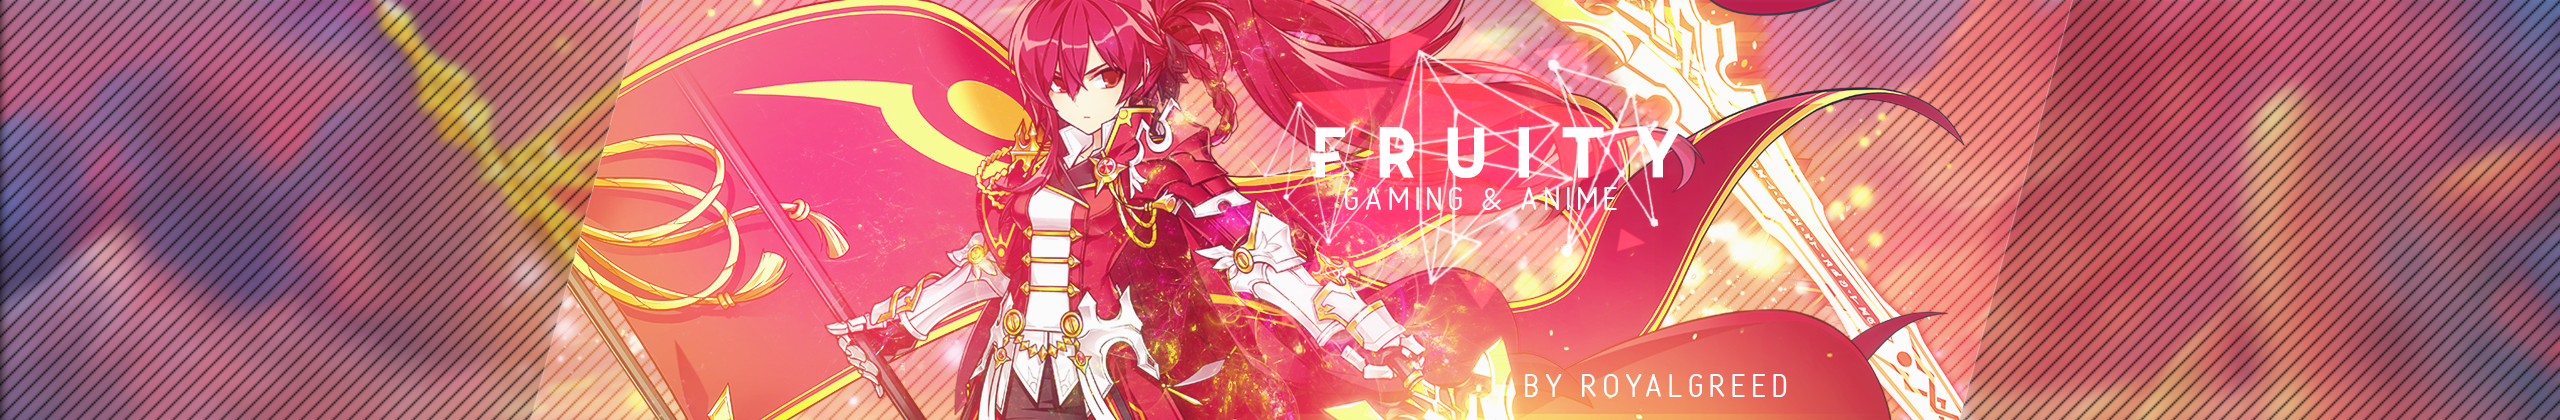 Fruity_Empire_Knight_Banner.png